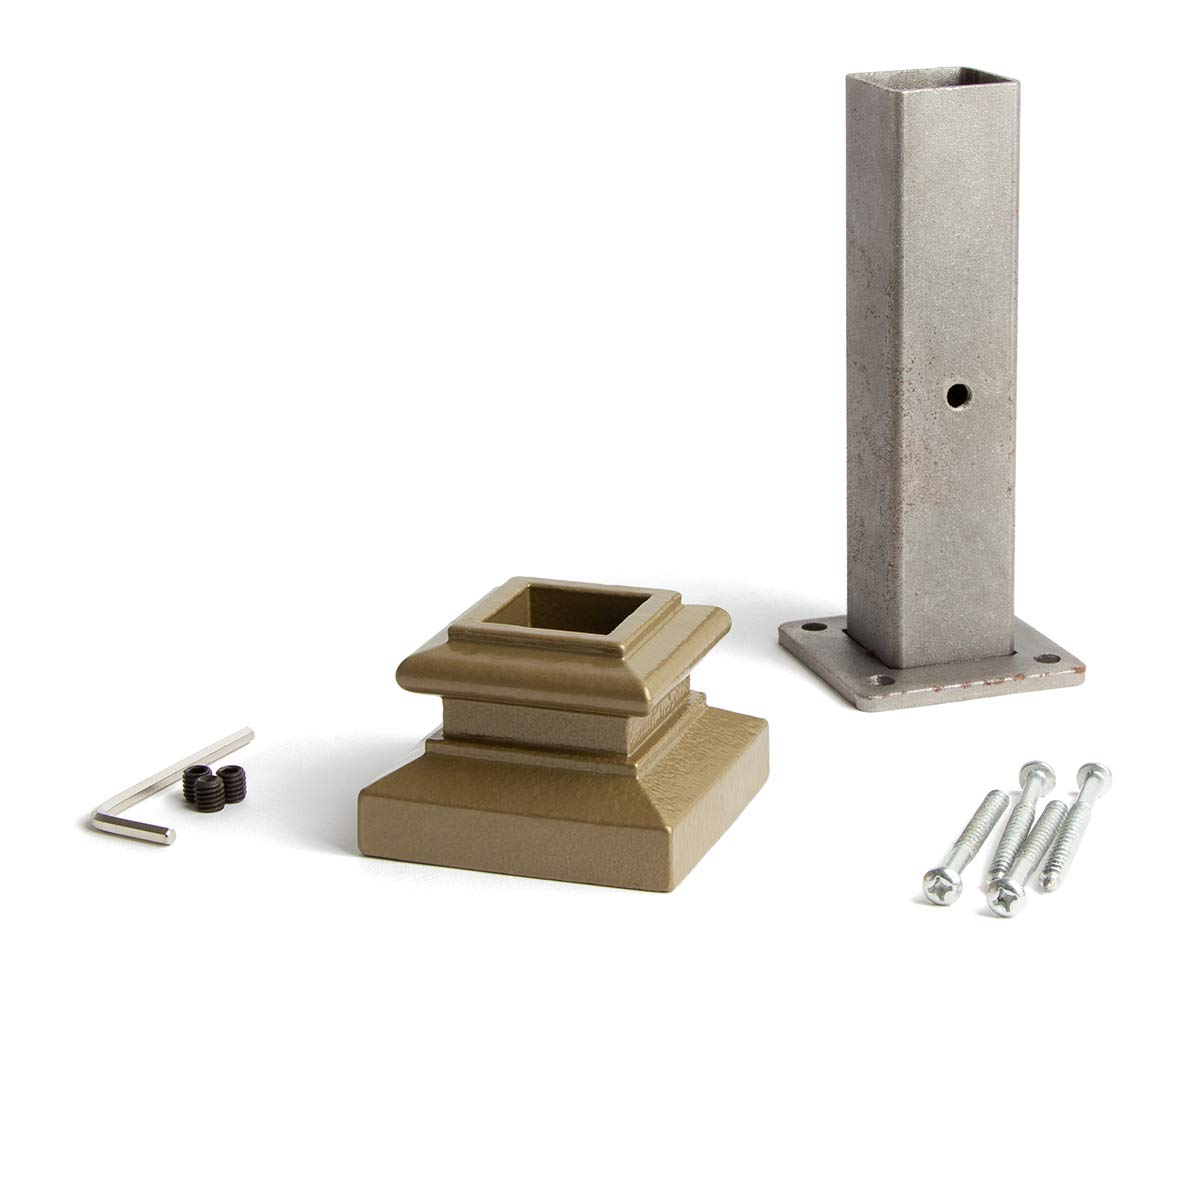 Dorado Gold 16.2.3 Newel Mounting Kit for 1-3/16 inch Square Iron Newel Posts for Stair Remodeling by House of Forgings